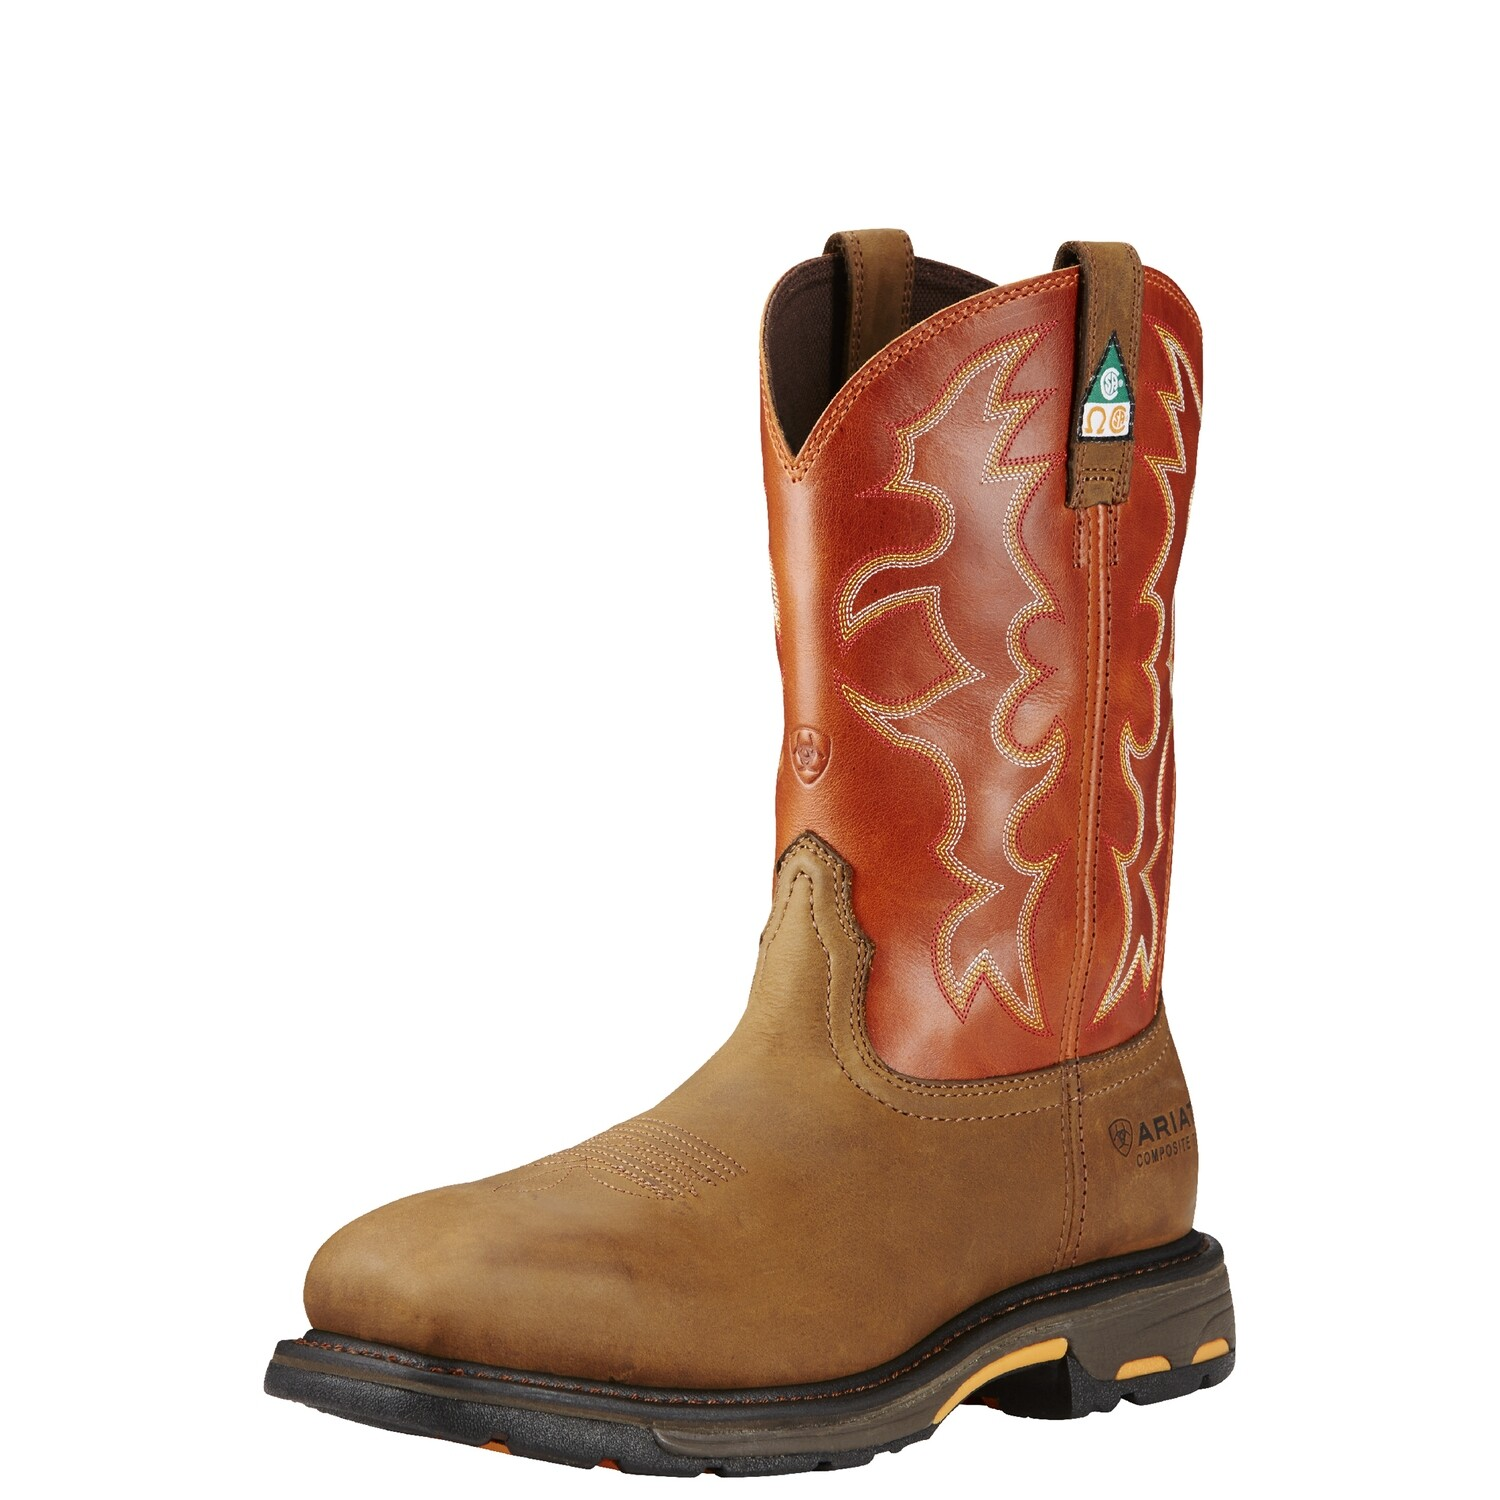 10017170 ARIAT WIDE SQ PUNCTURE RESISTANT COMP TOE